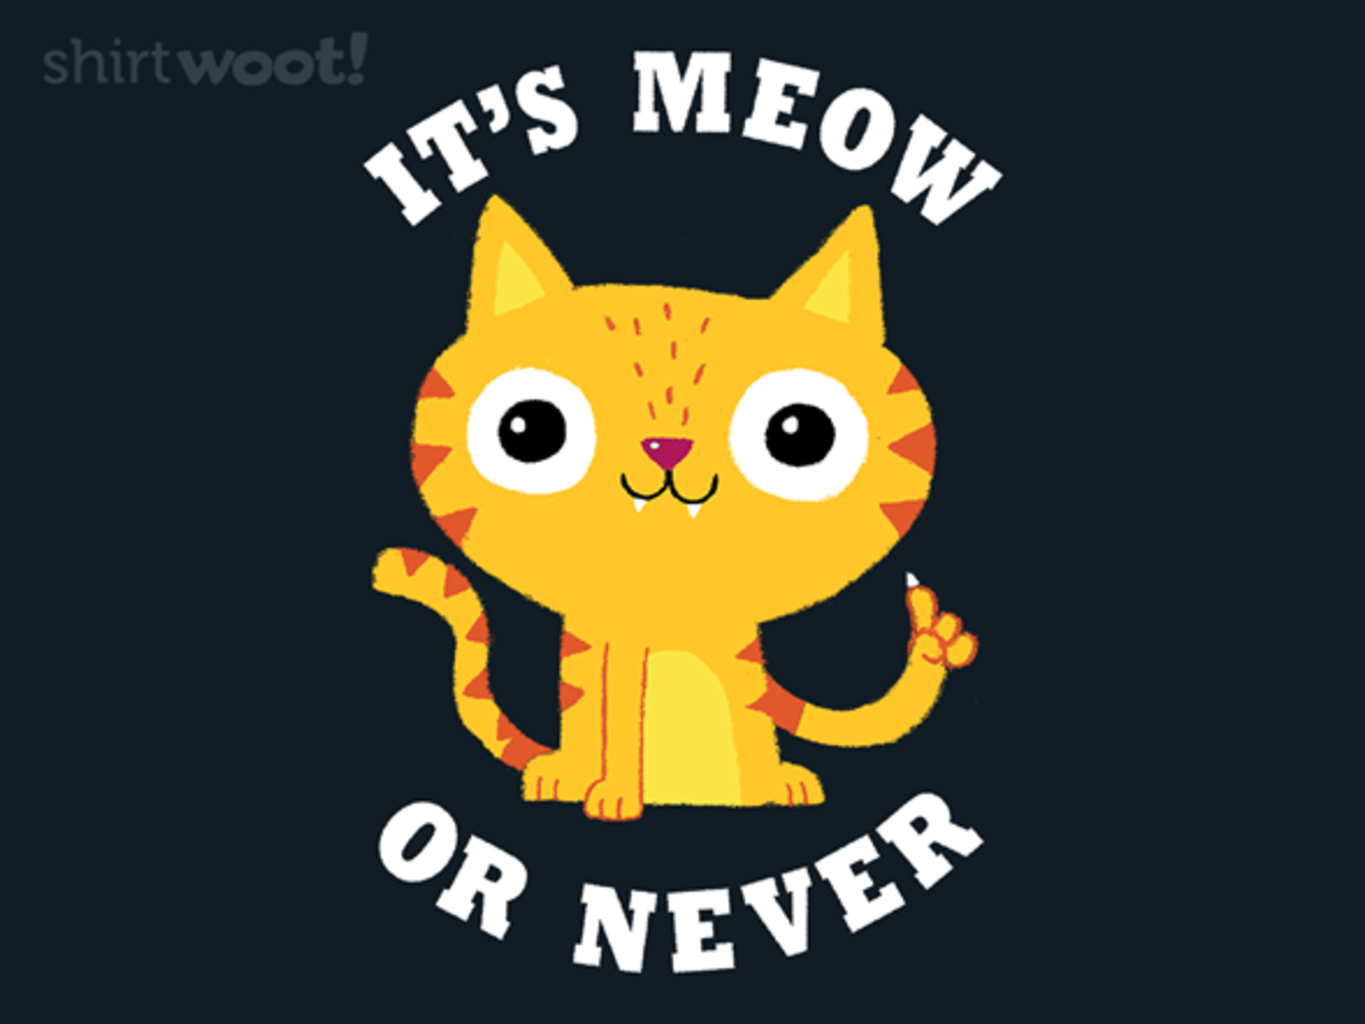 Woot!: Meow Or Never